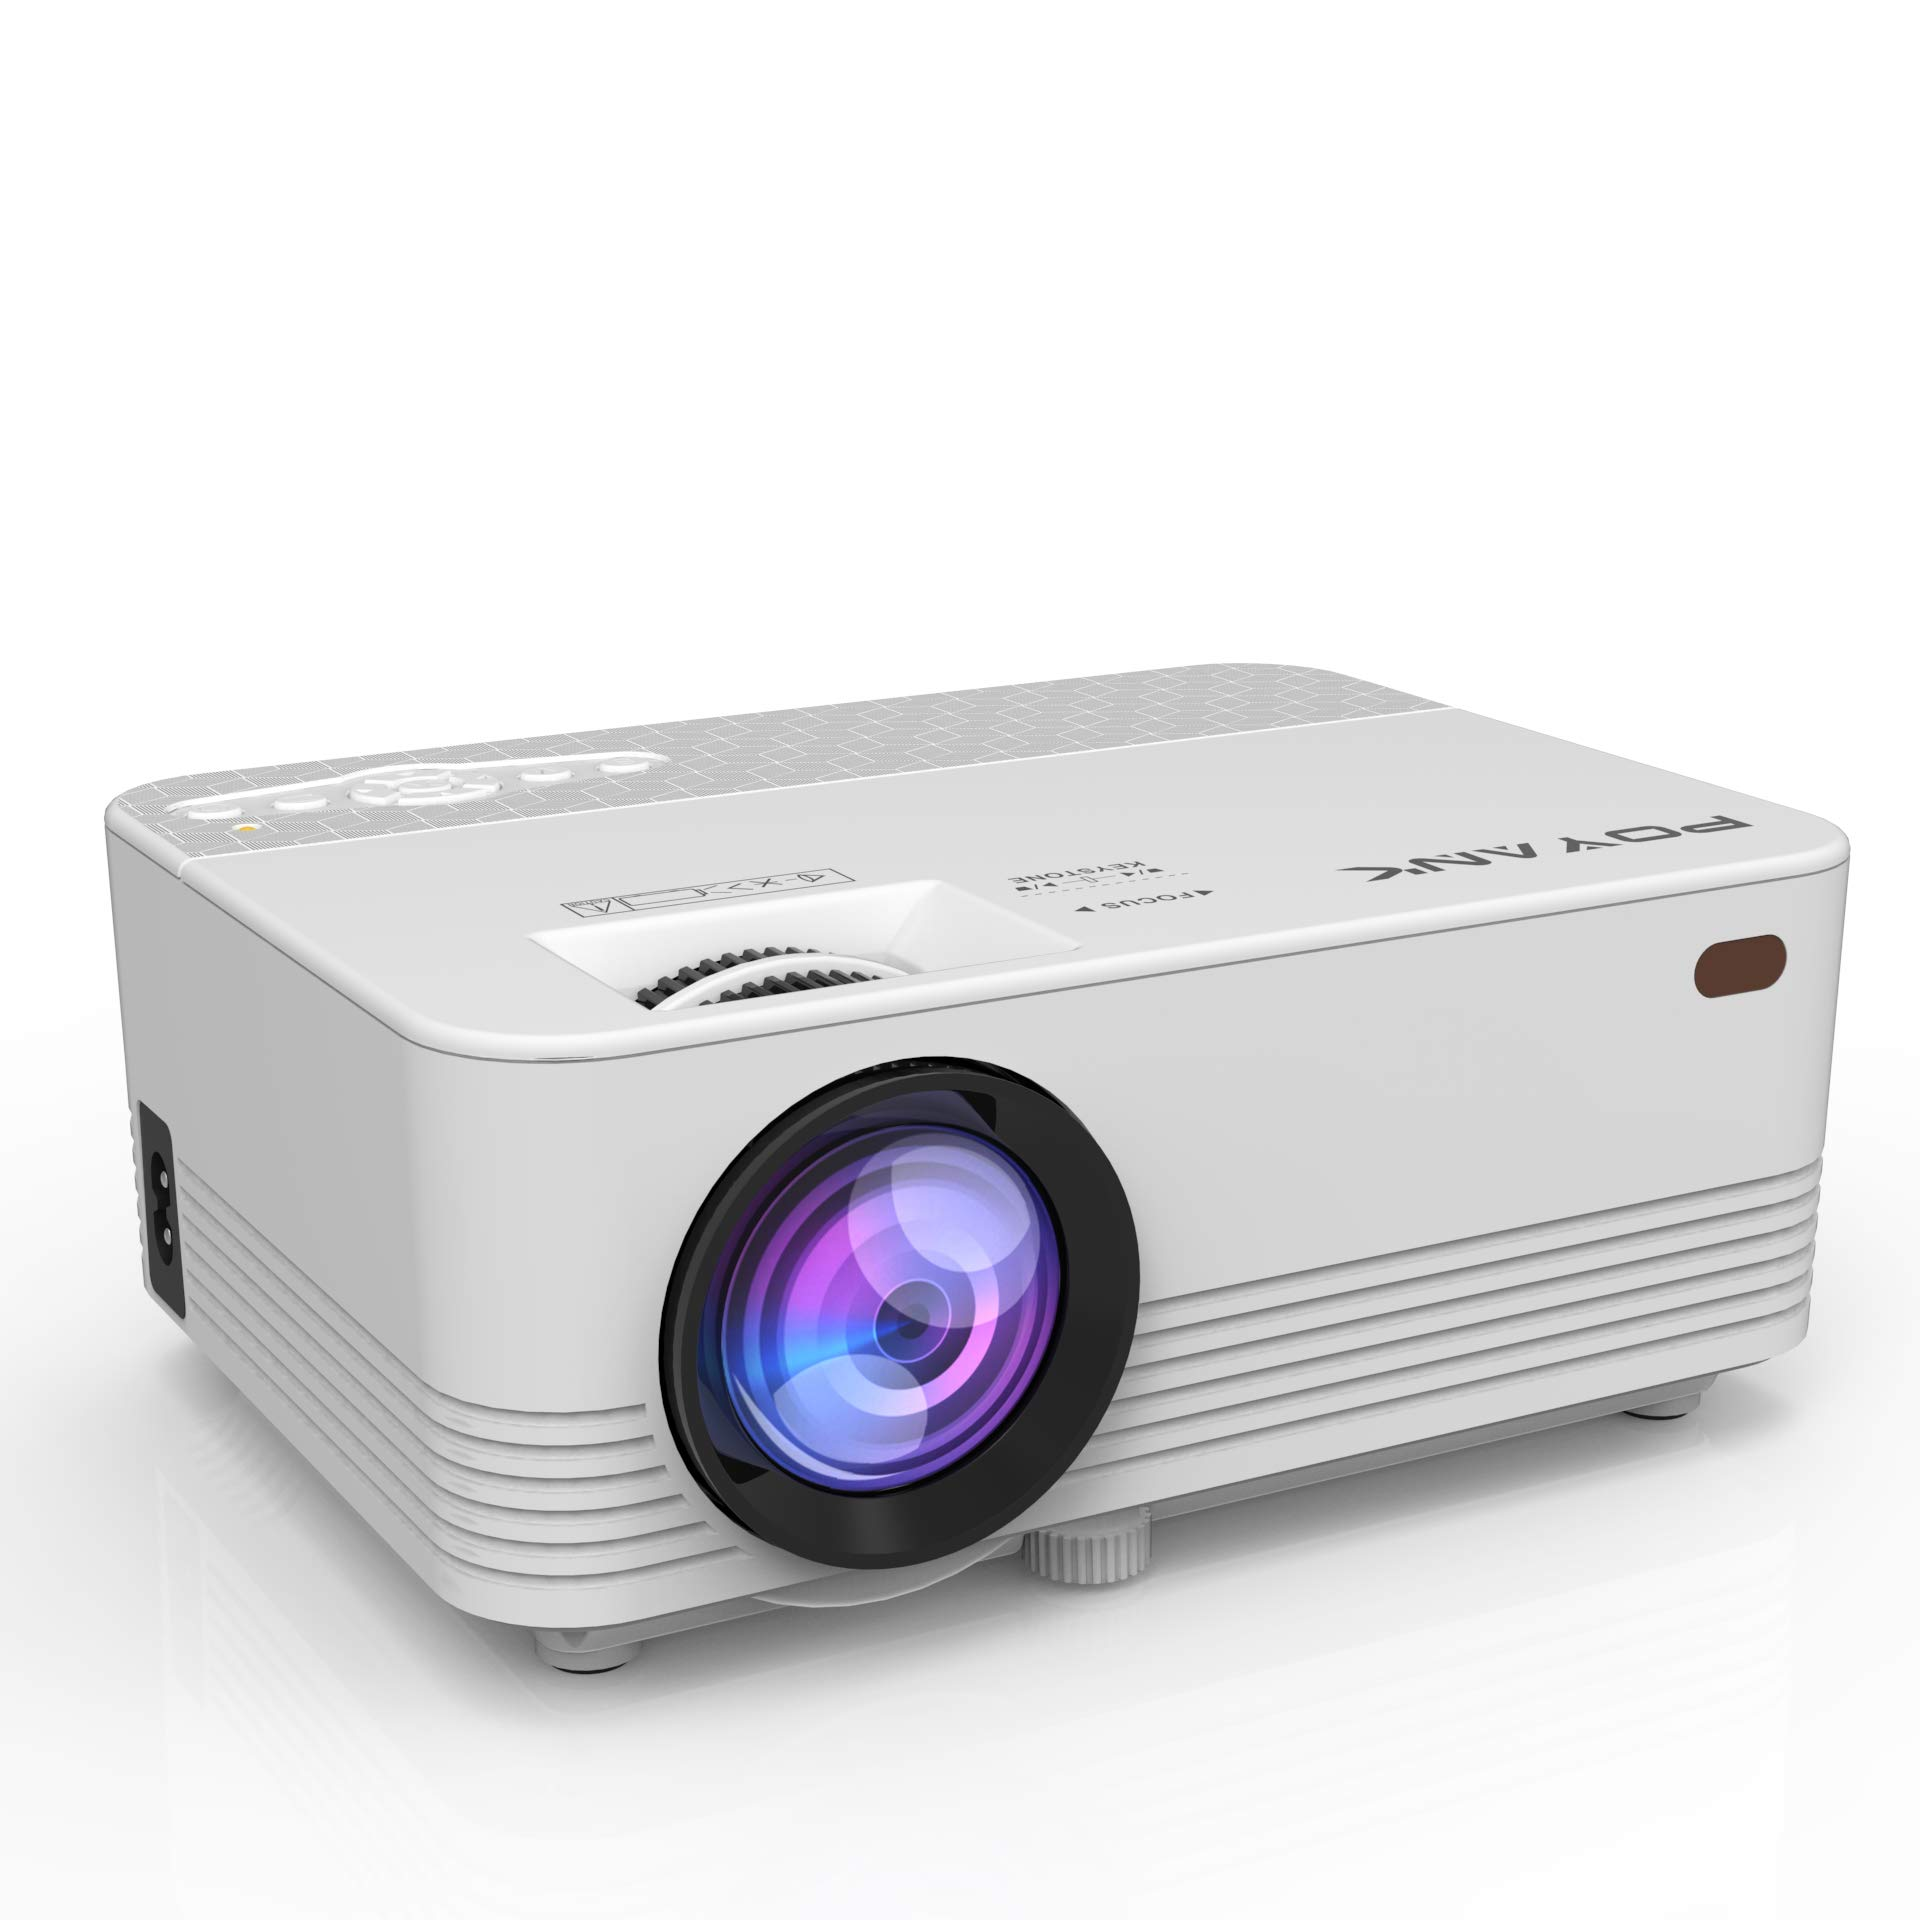 [WiFi Projector] POYANK 2000LUX LED Mini Projector, WiFi Directly Connect with iPhone X,8,7,6,5/iPad/Mac/Google/Samsung,Huawei,Xiaomi & Android Device (1080p Supported) (WiFi Model)